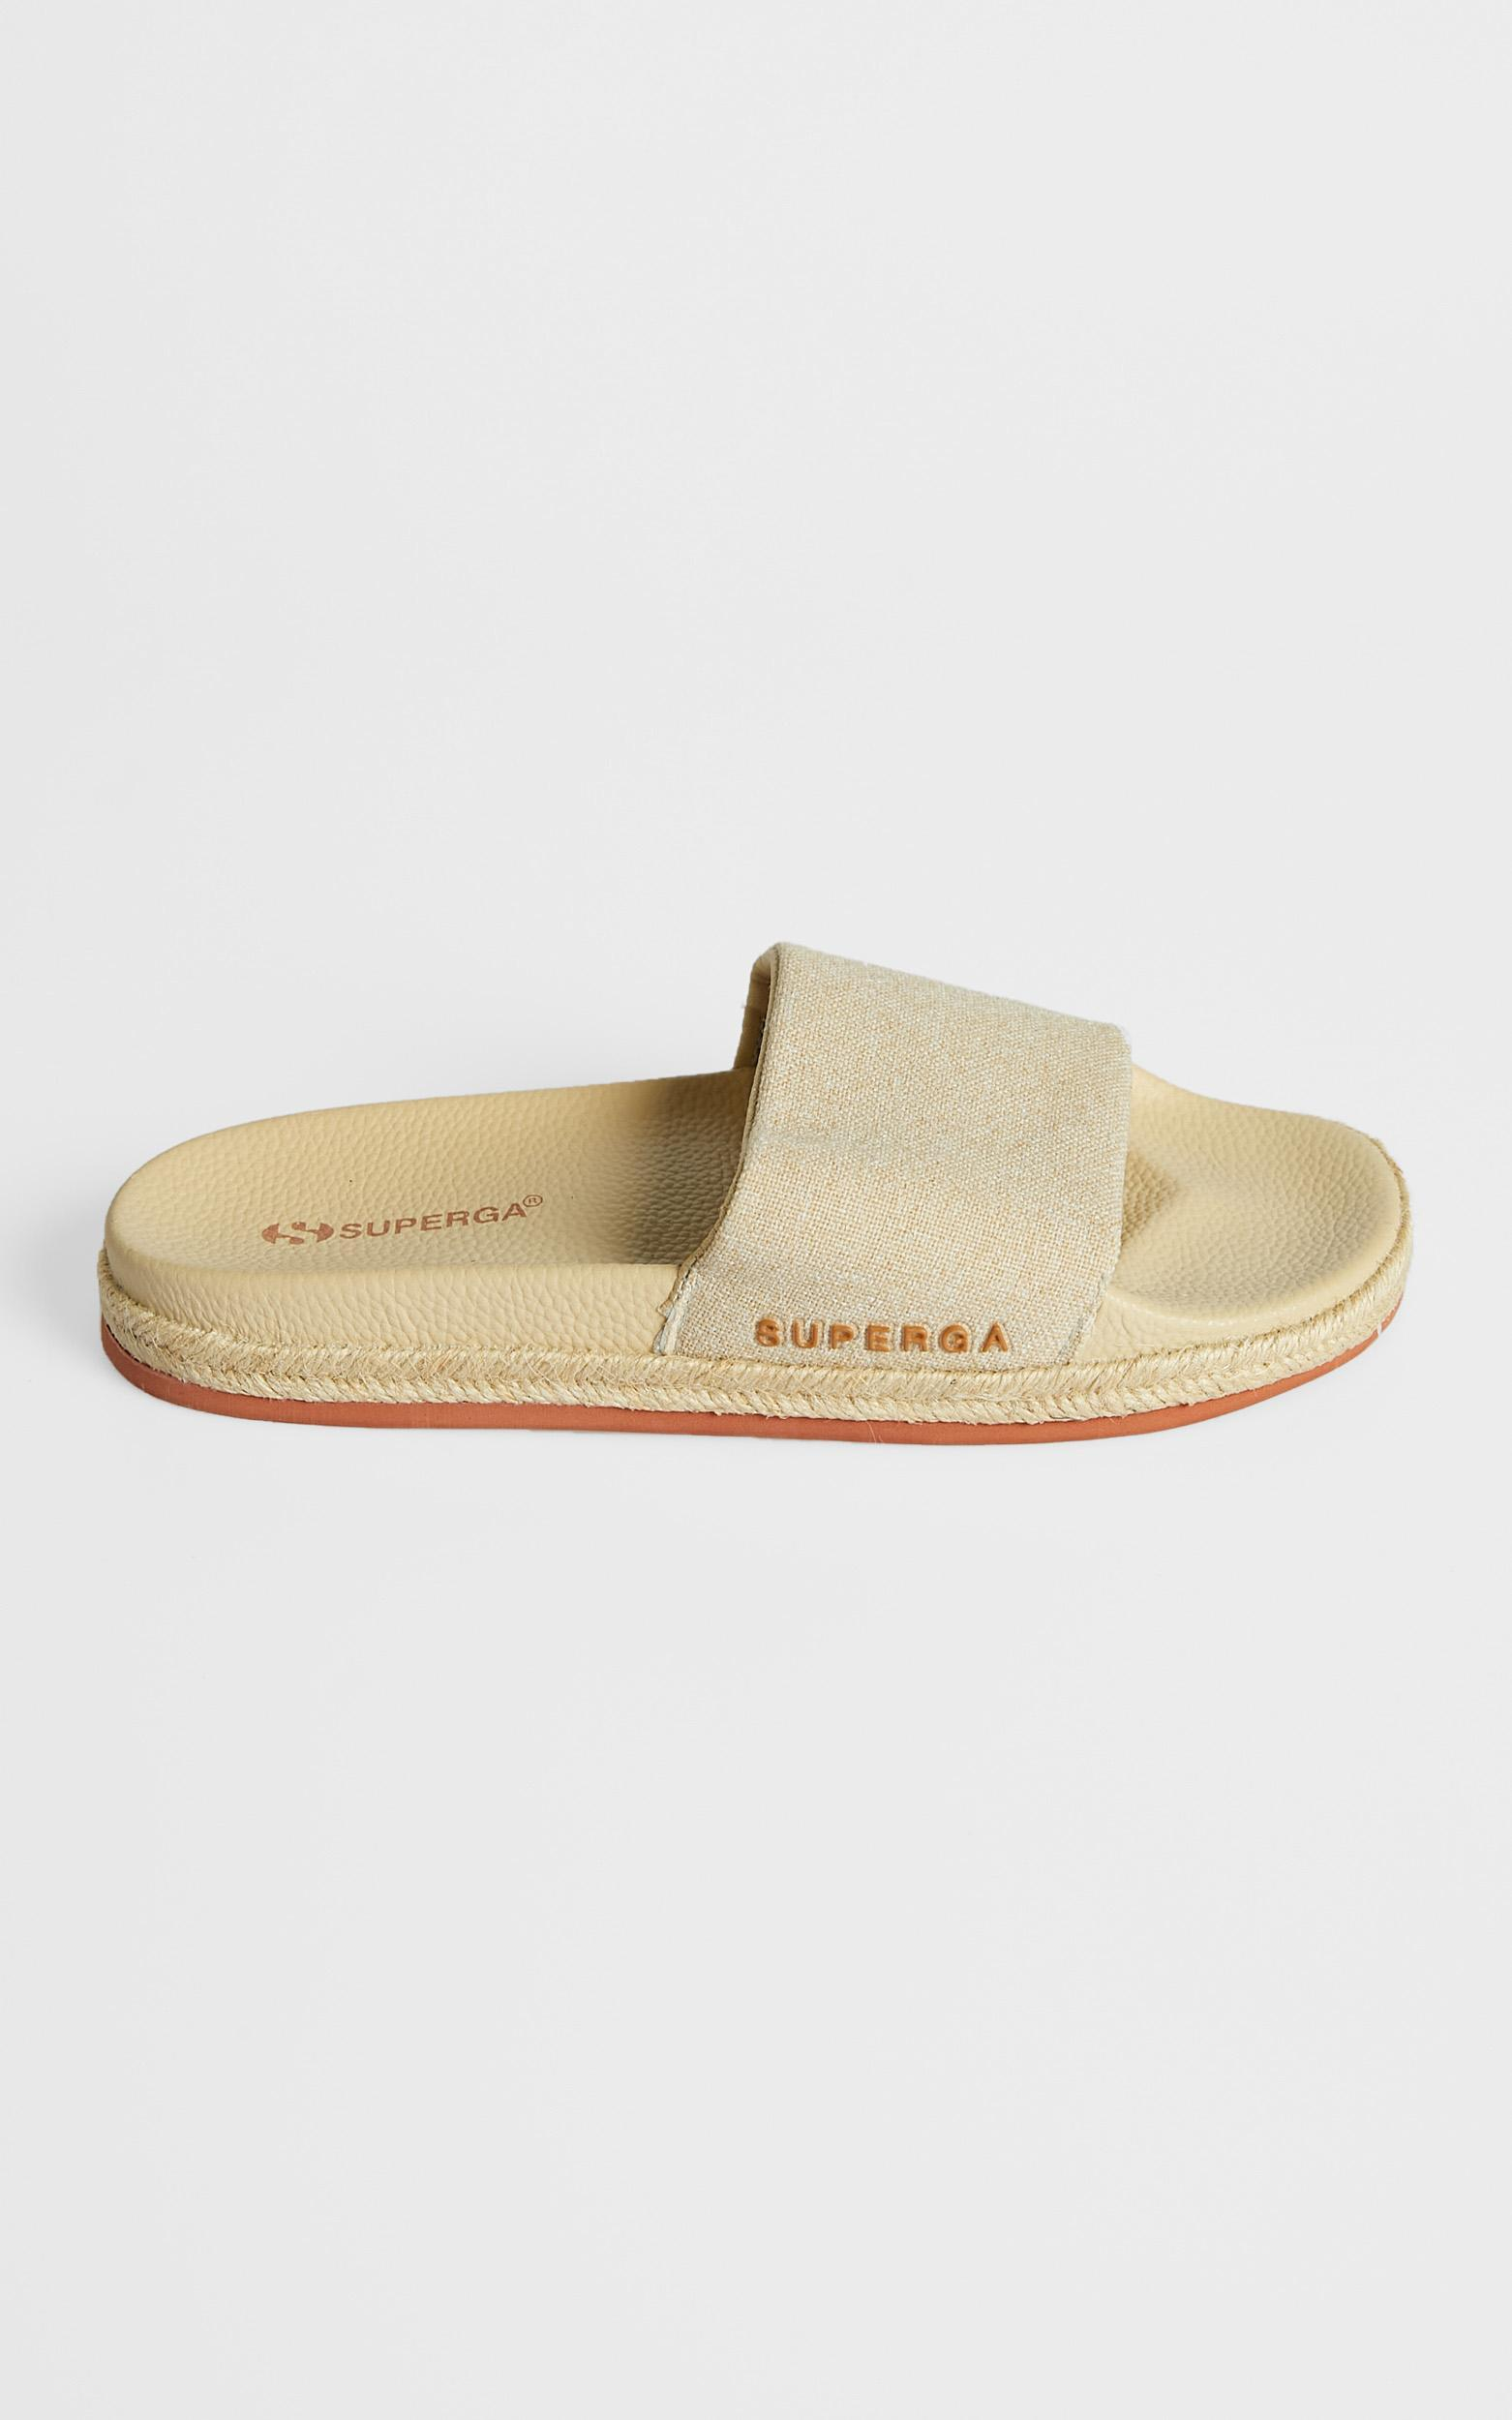 Superga - 1908 Rope Linen Slides in Taupe - 5, Taupe, hi-res image number null